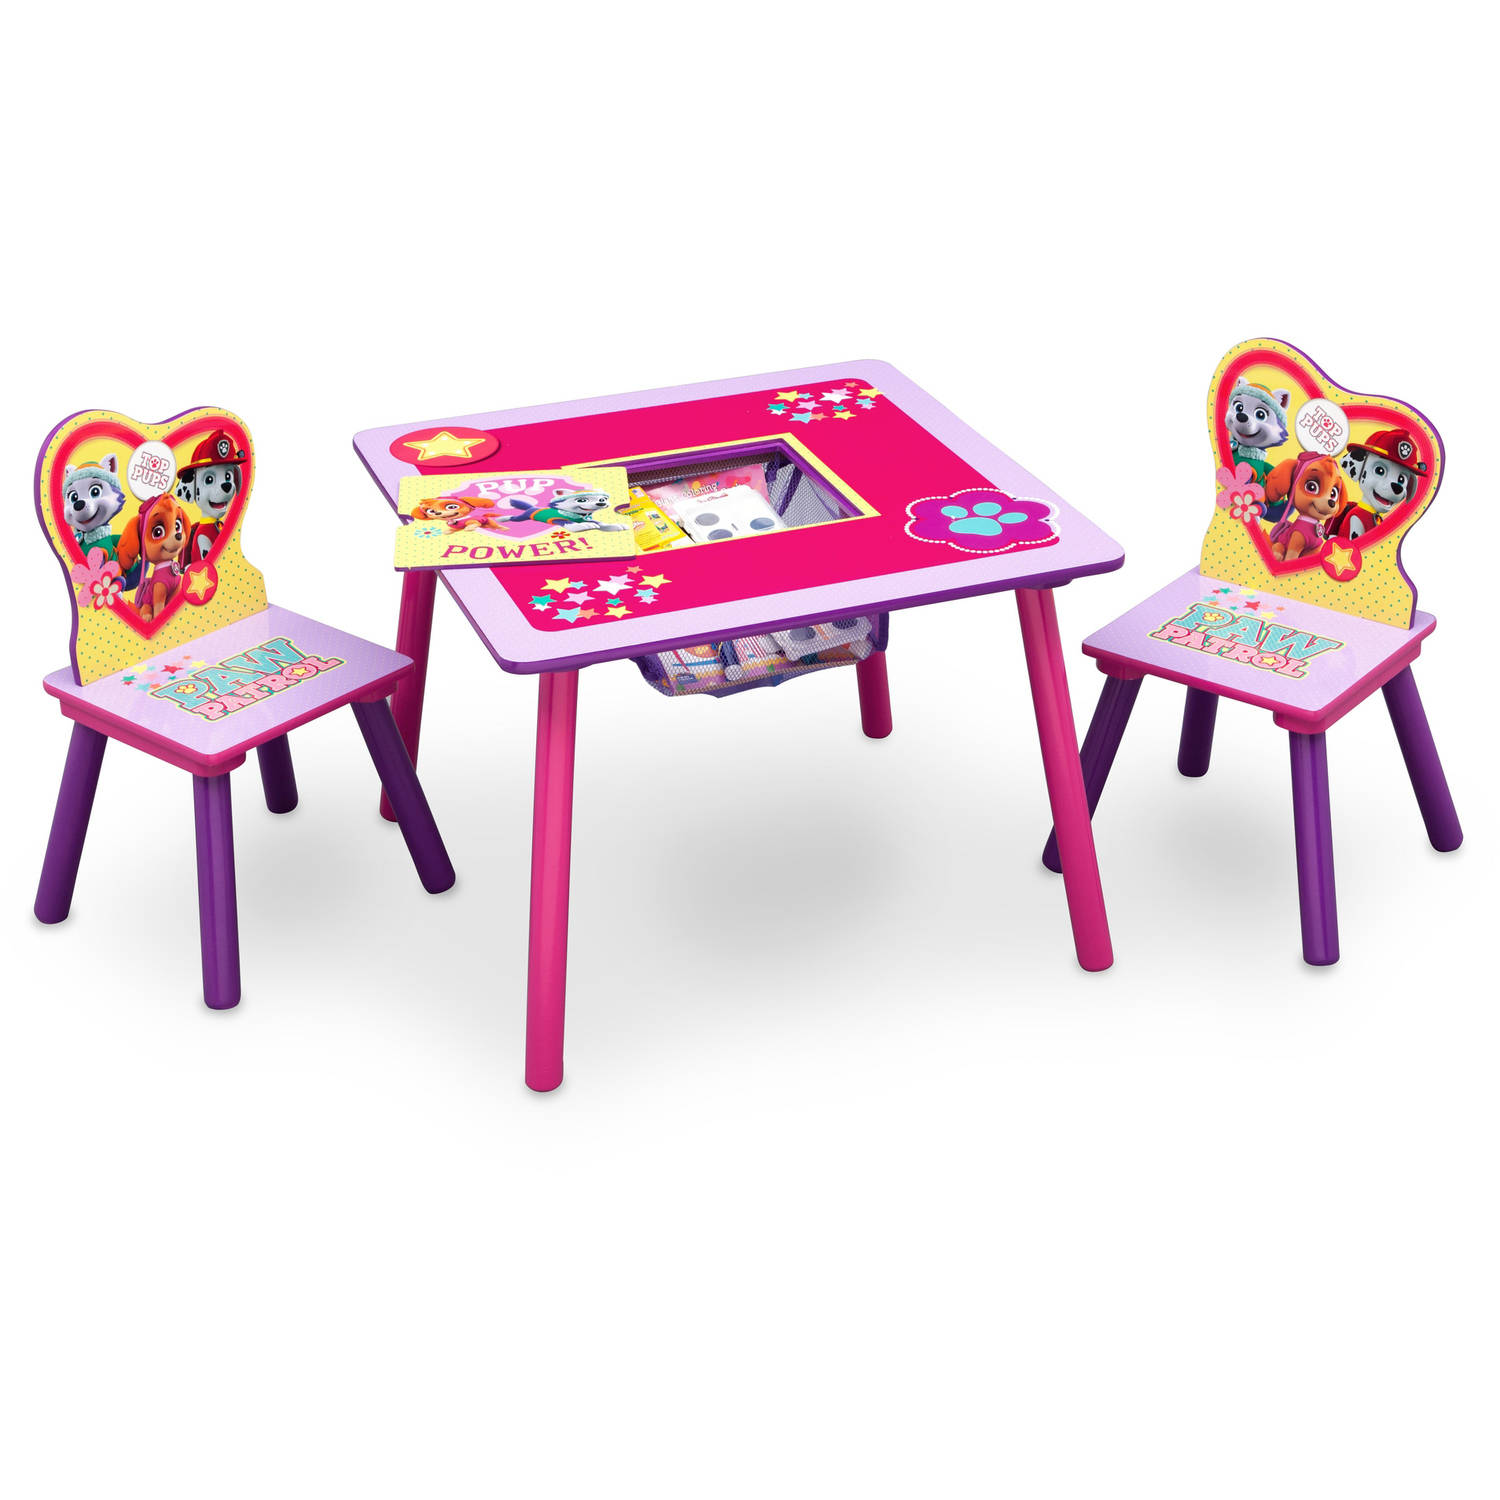 Nickelodeon Paw Patrol Skye and Everest Table and Chair Set with Storage  sc 1 st  Walmart & Toddler Princess Chairs